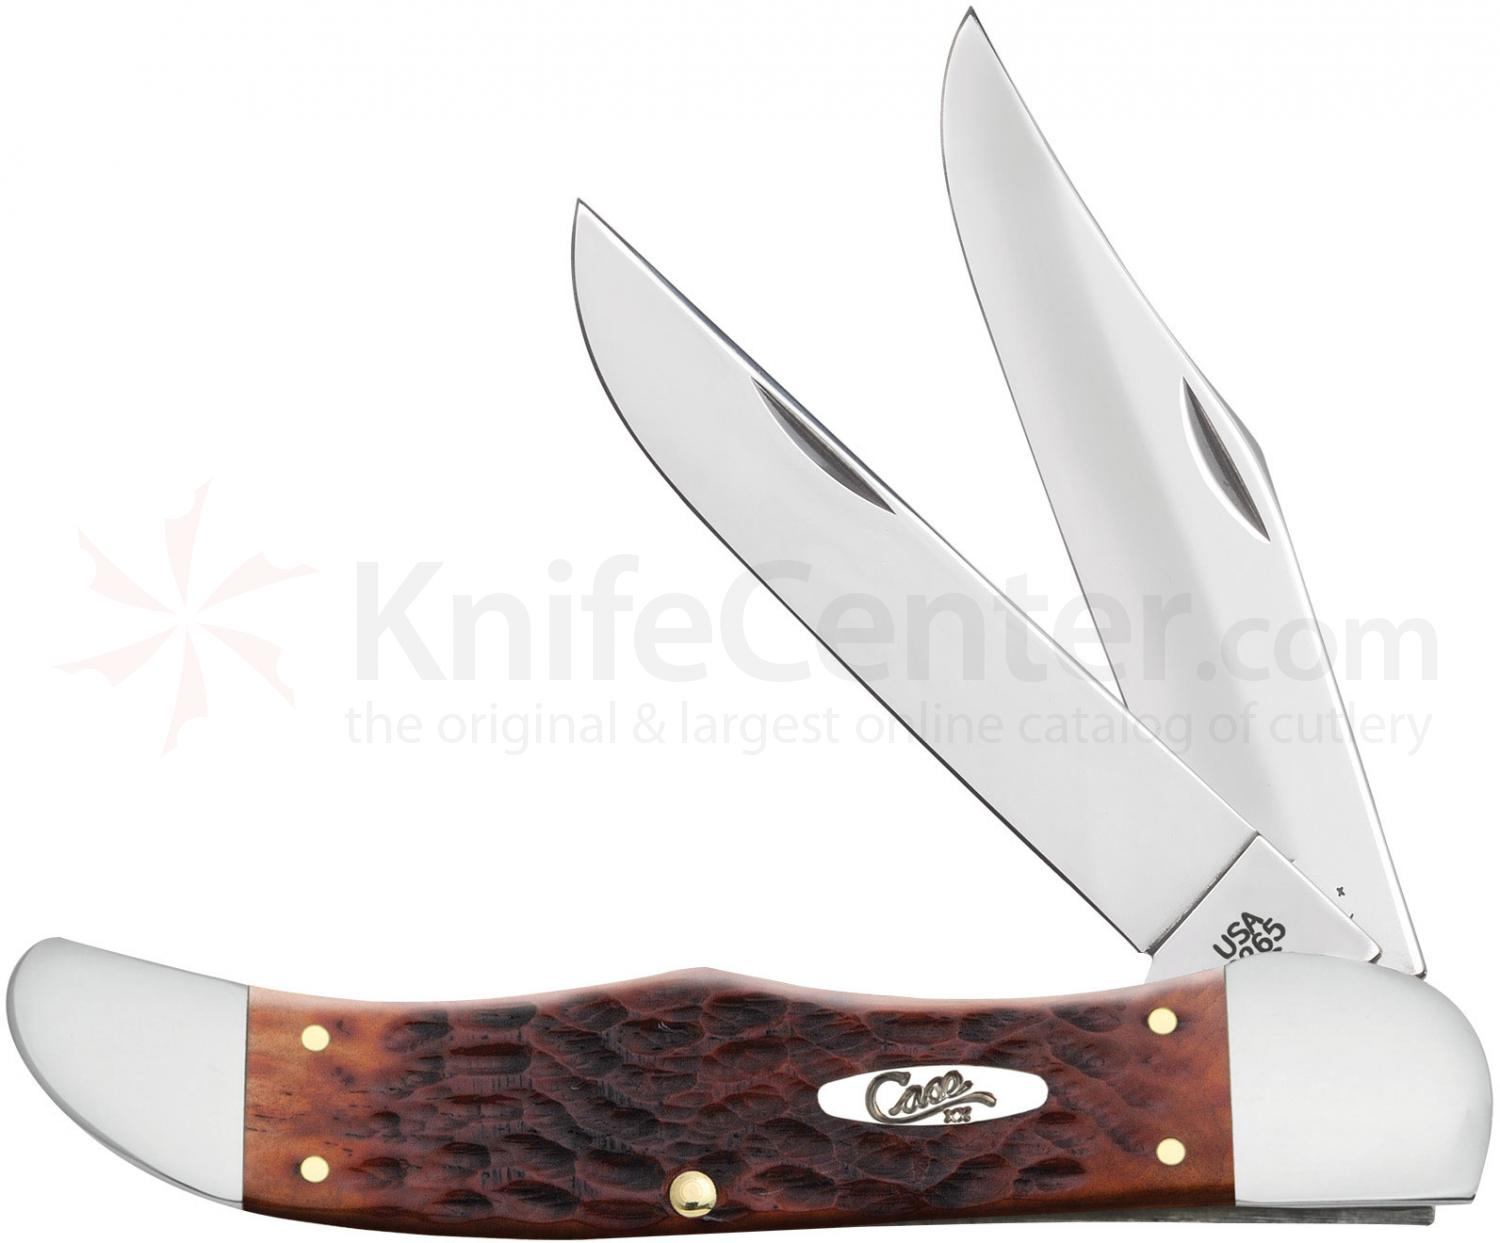 Case Chestnut Bone CV Folding Hunter 5-1/4 inch Closed (6265 CV)